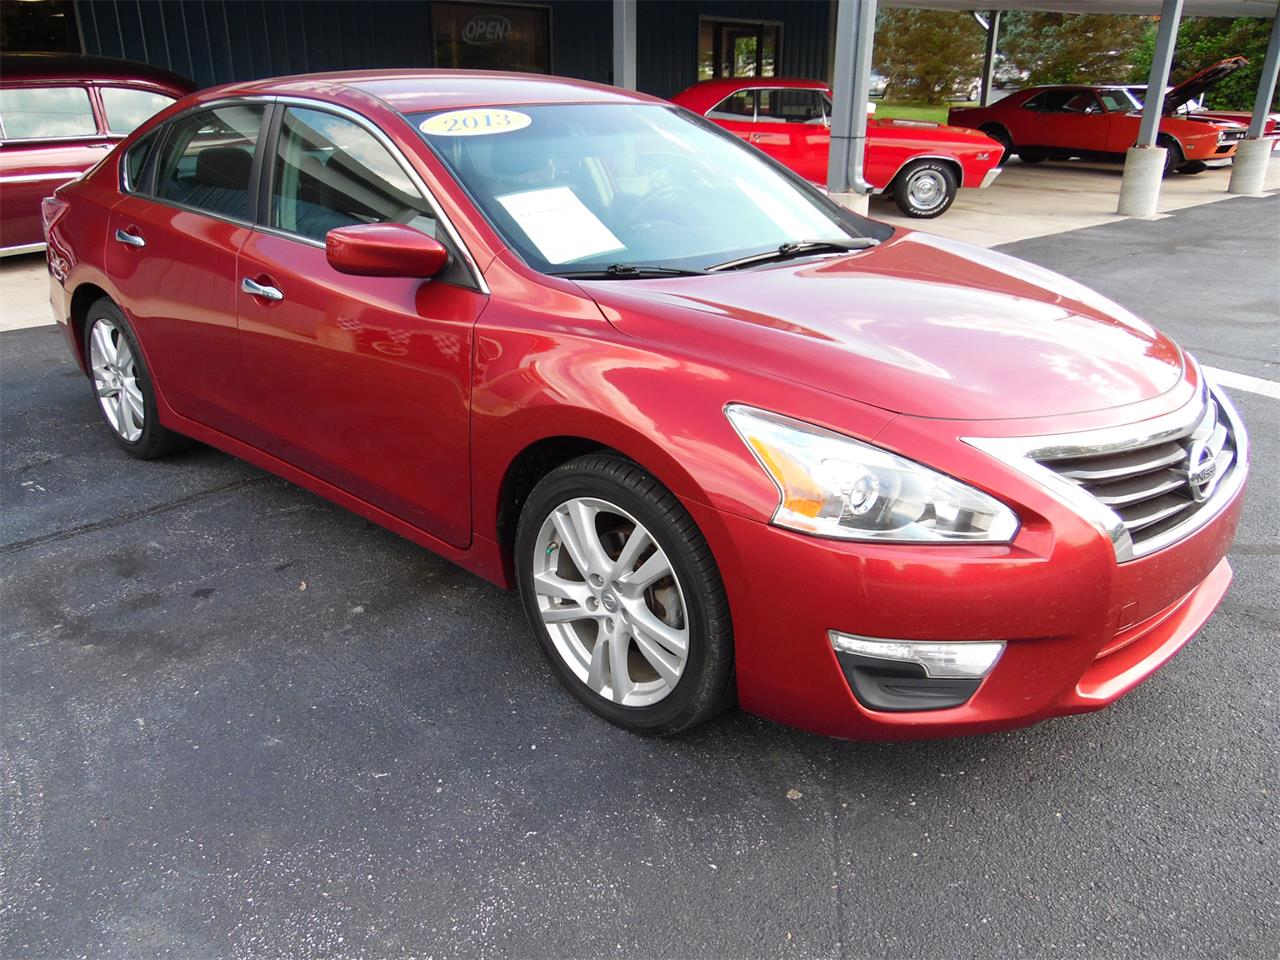 Large Picture of '13 Nissan Altima located in Kentucky - $10,760.00 Offered by Central Kentucky Classic Cars LLC  - Q36A